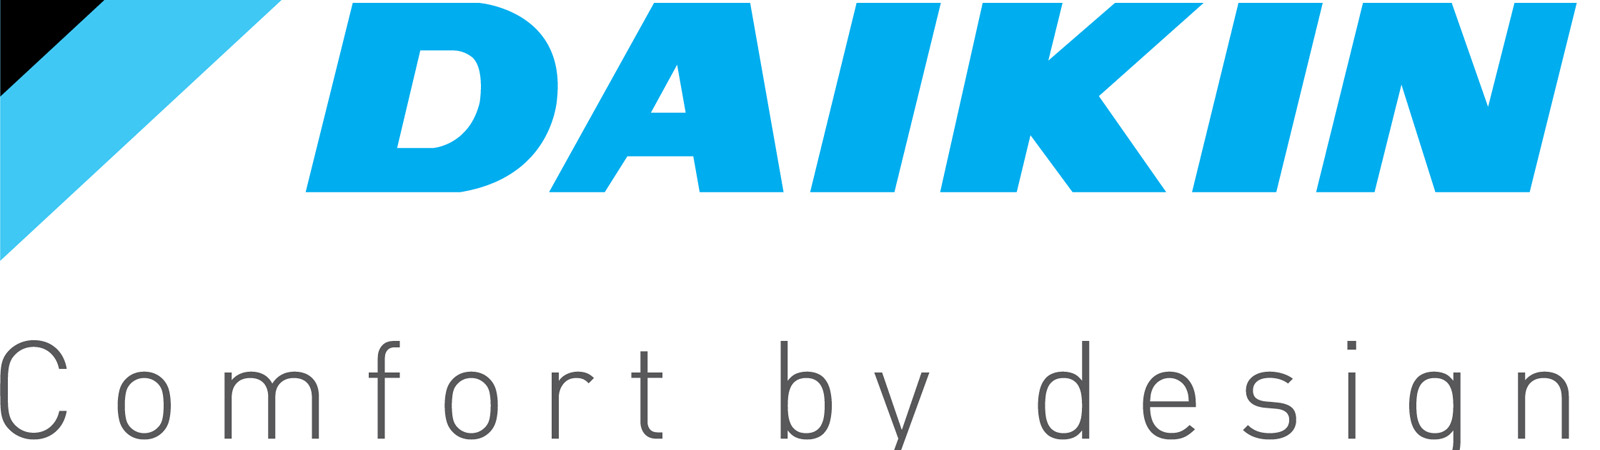 Daikin-Comfort-by-design-cropped